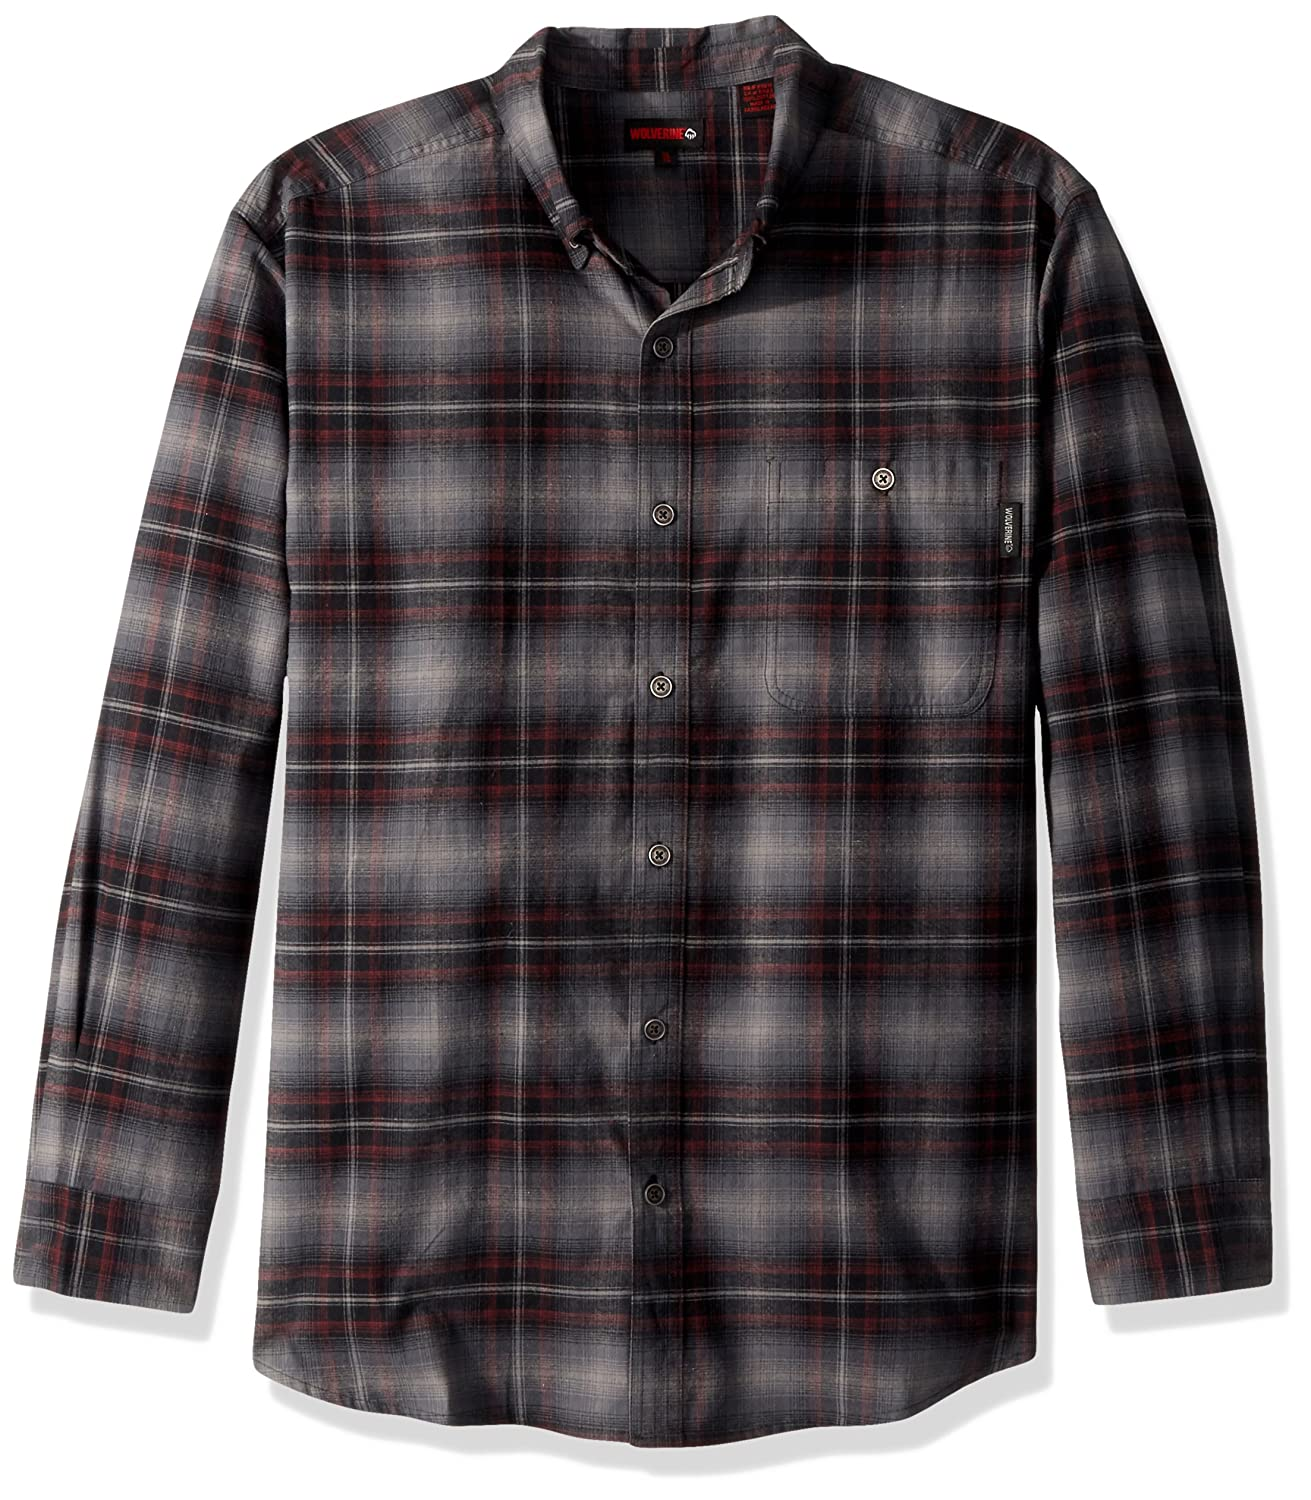 Wolverine SHIRT メンズ B0727Q7BGN XL|Granite Plaid Granite Plaid XL